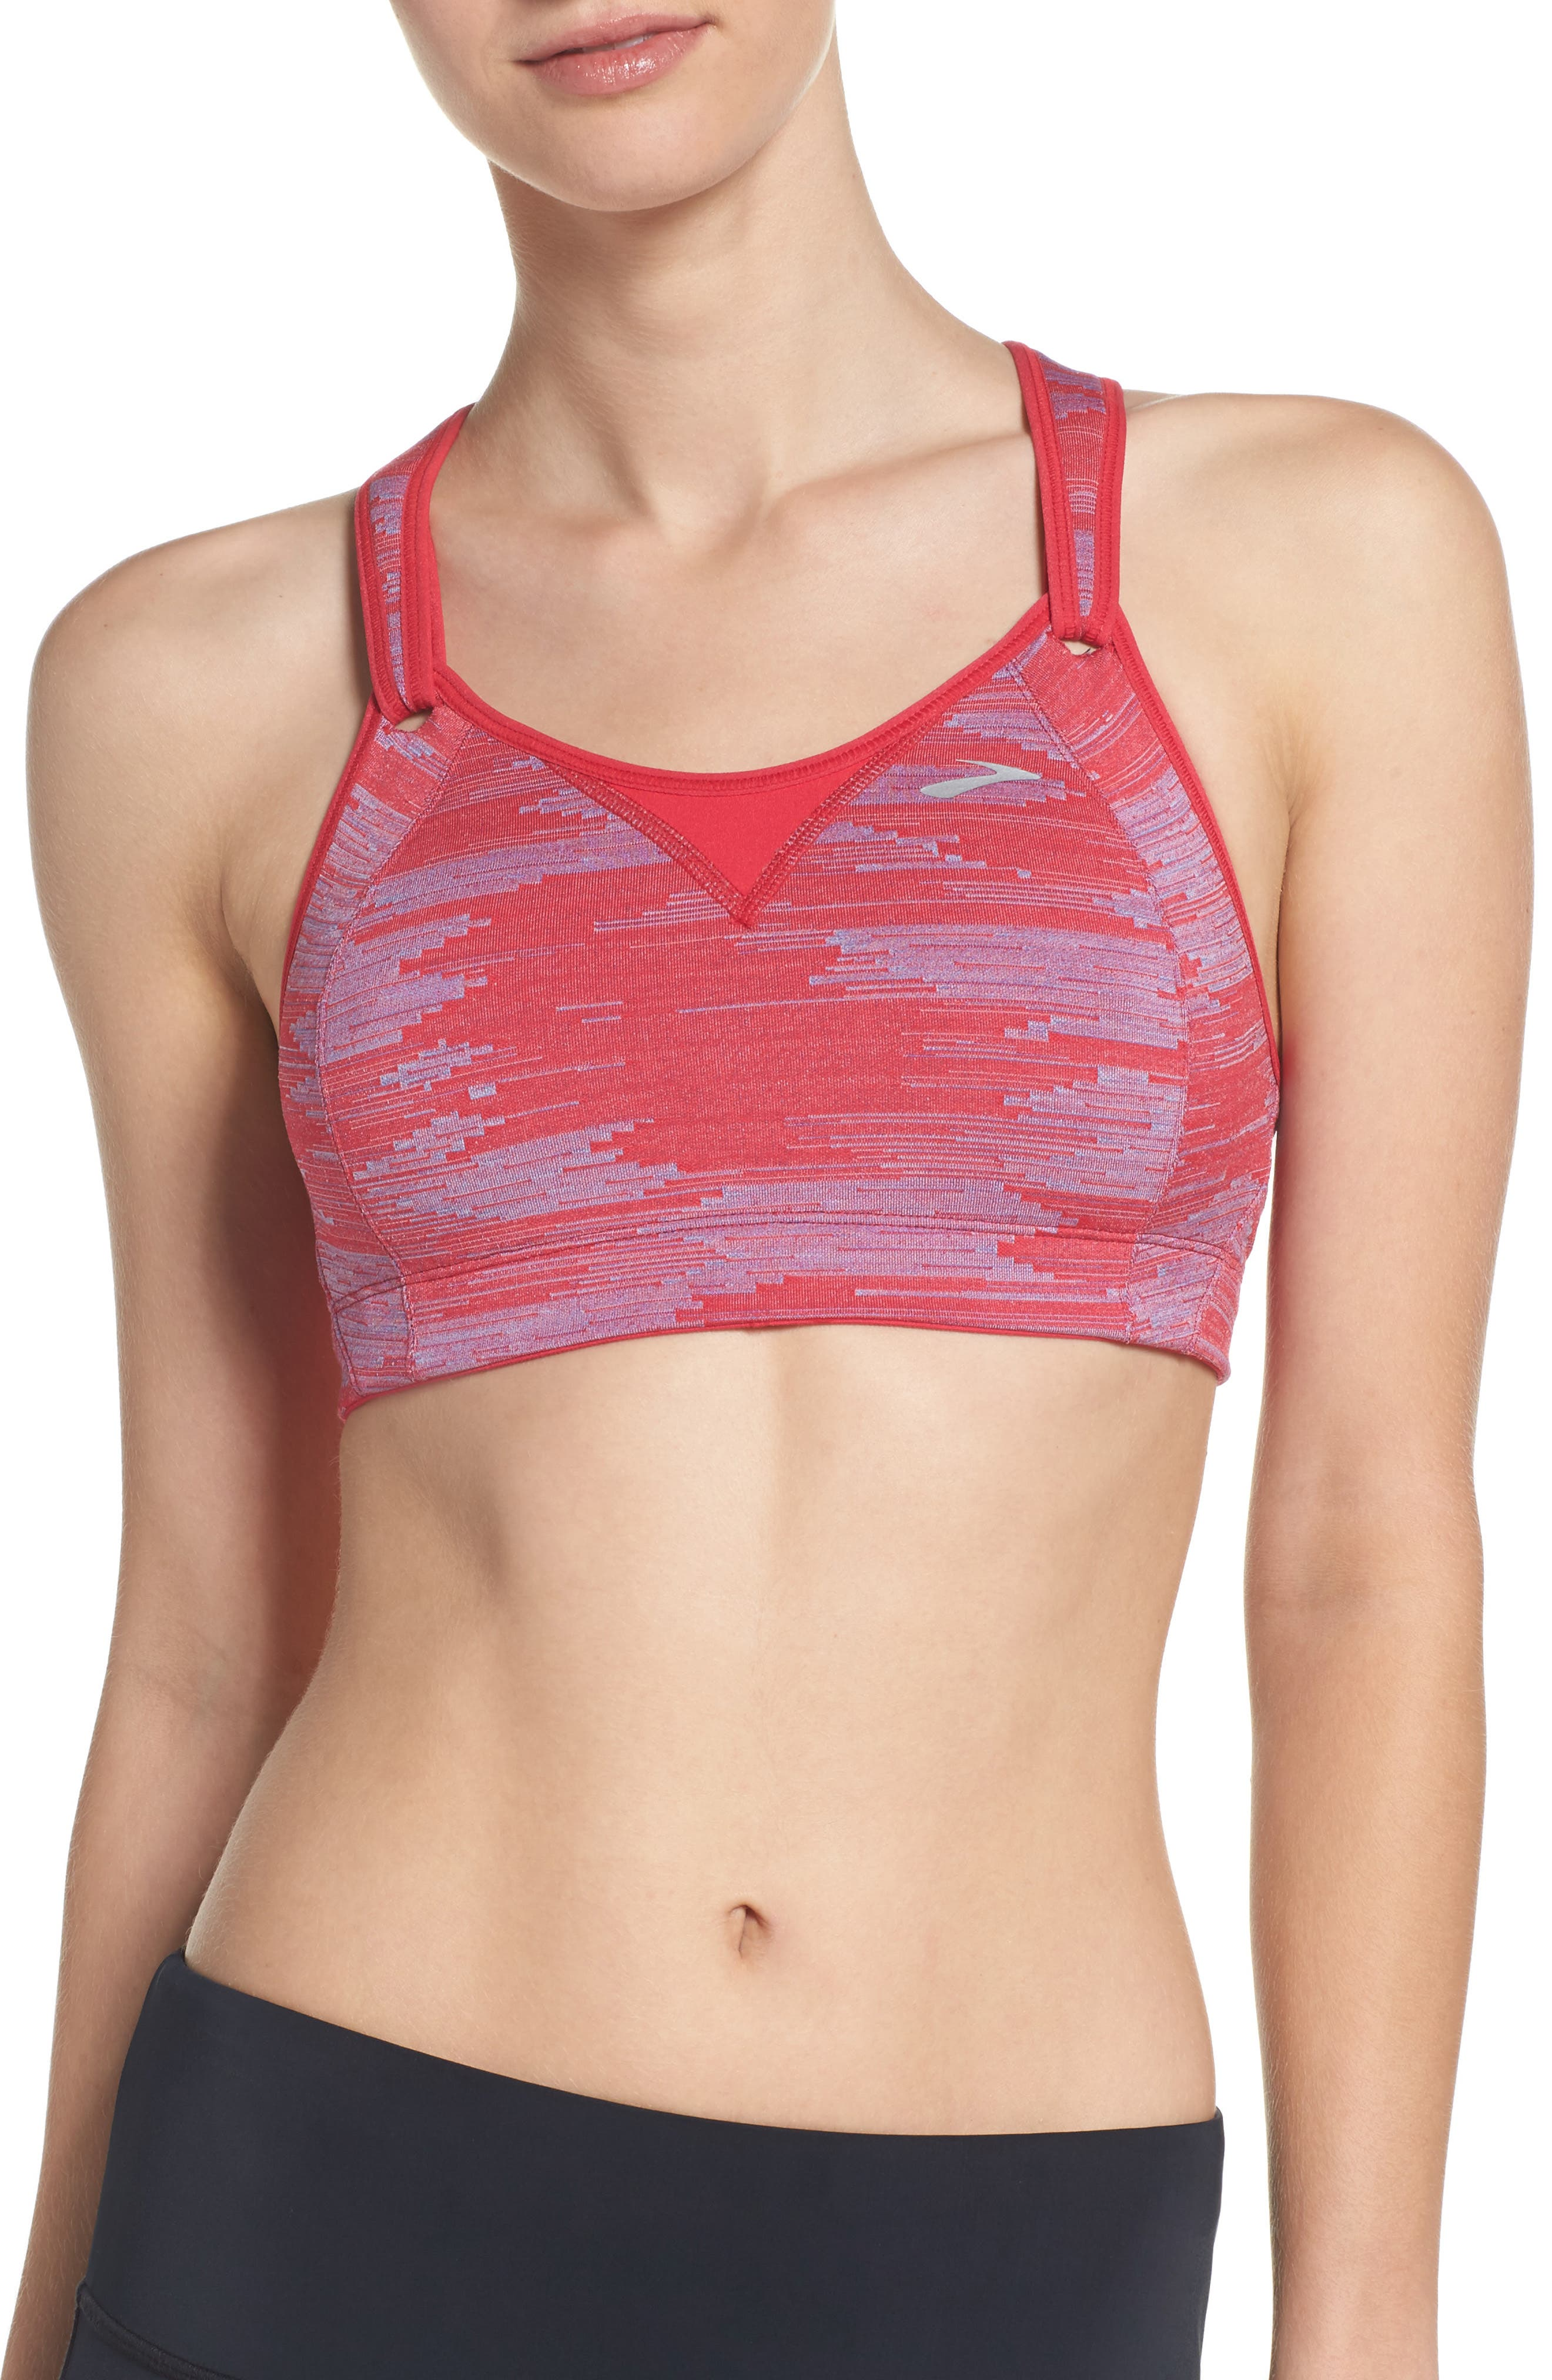 Moving Comfort 'Rebound Racer' Bra